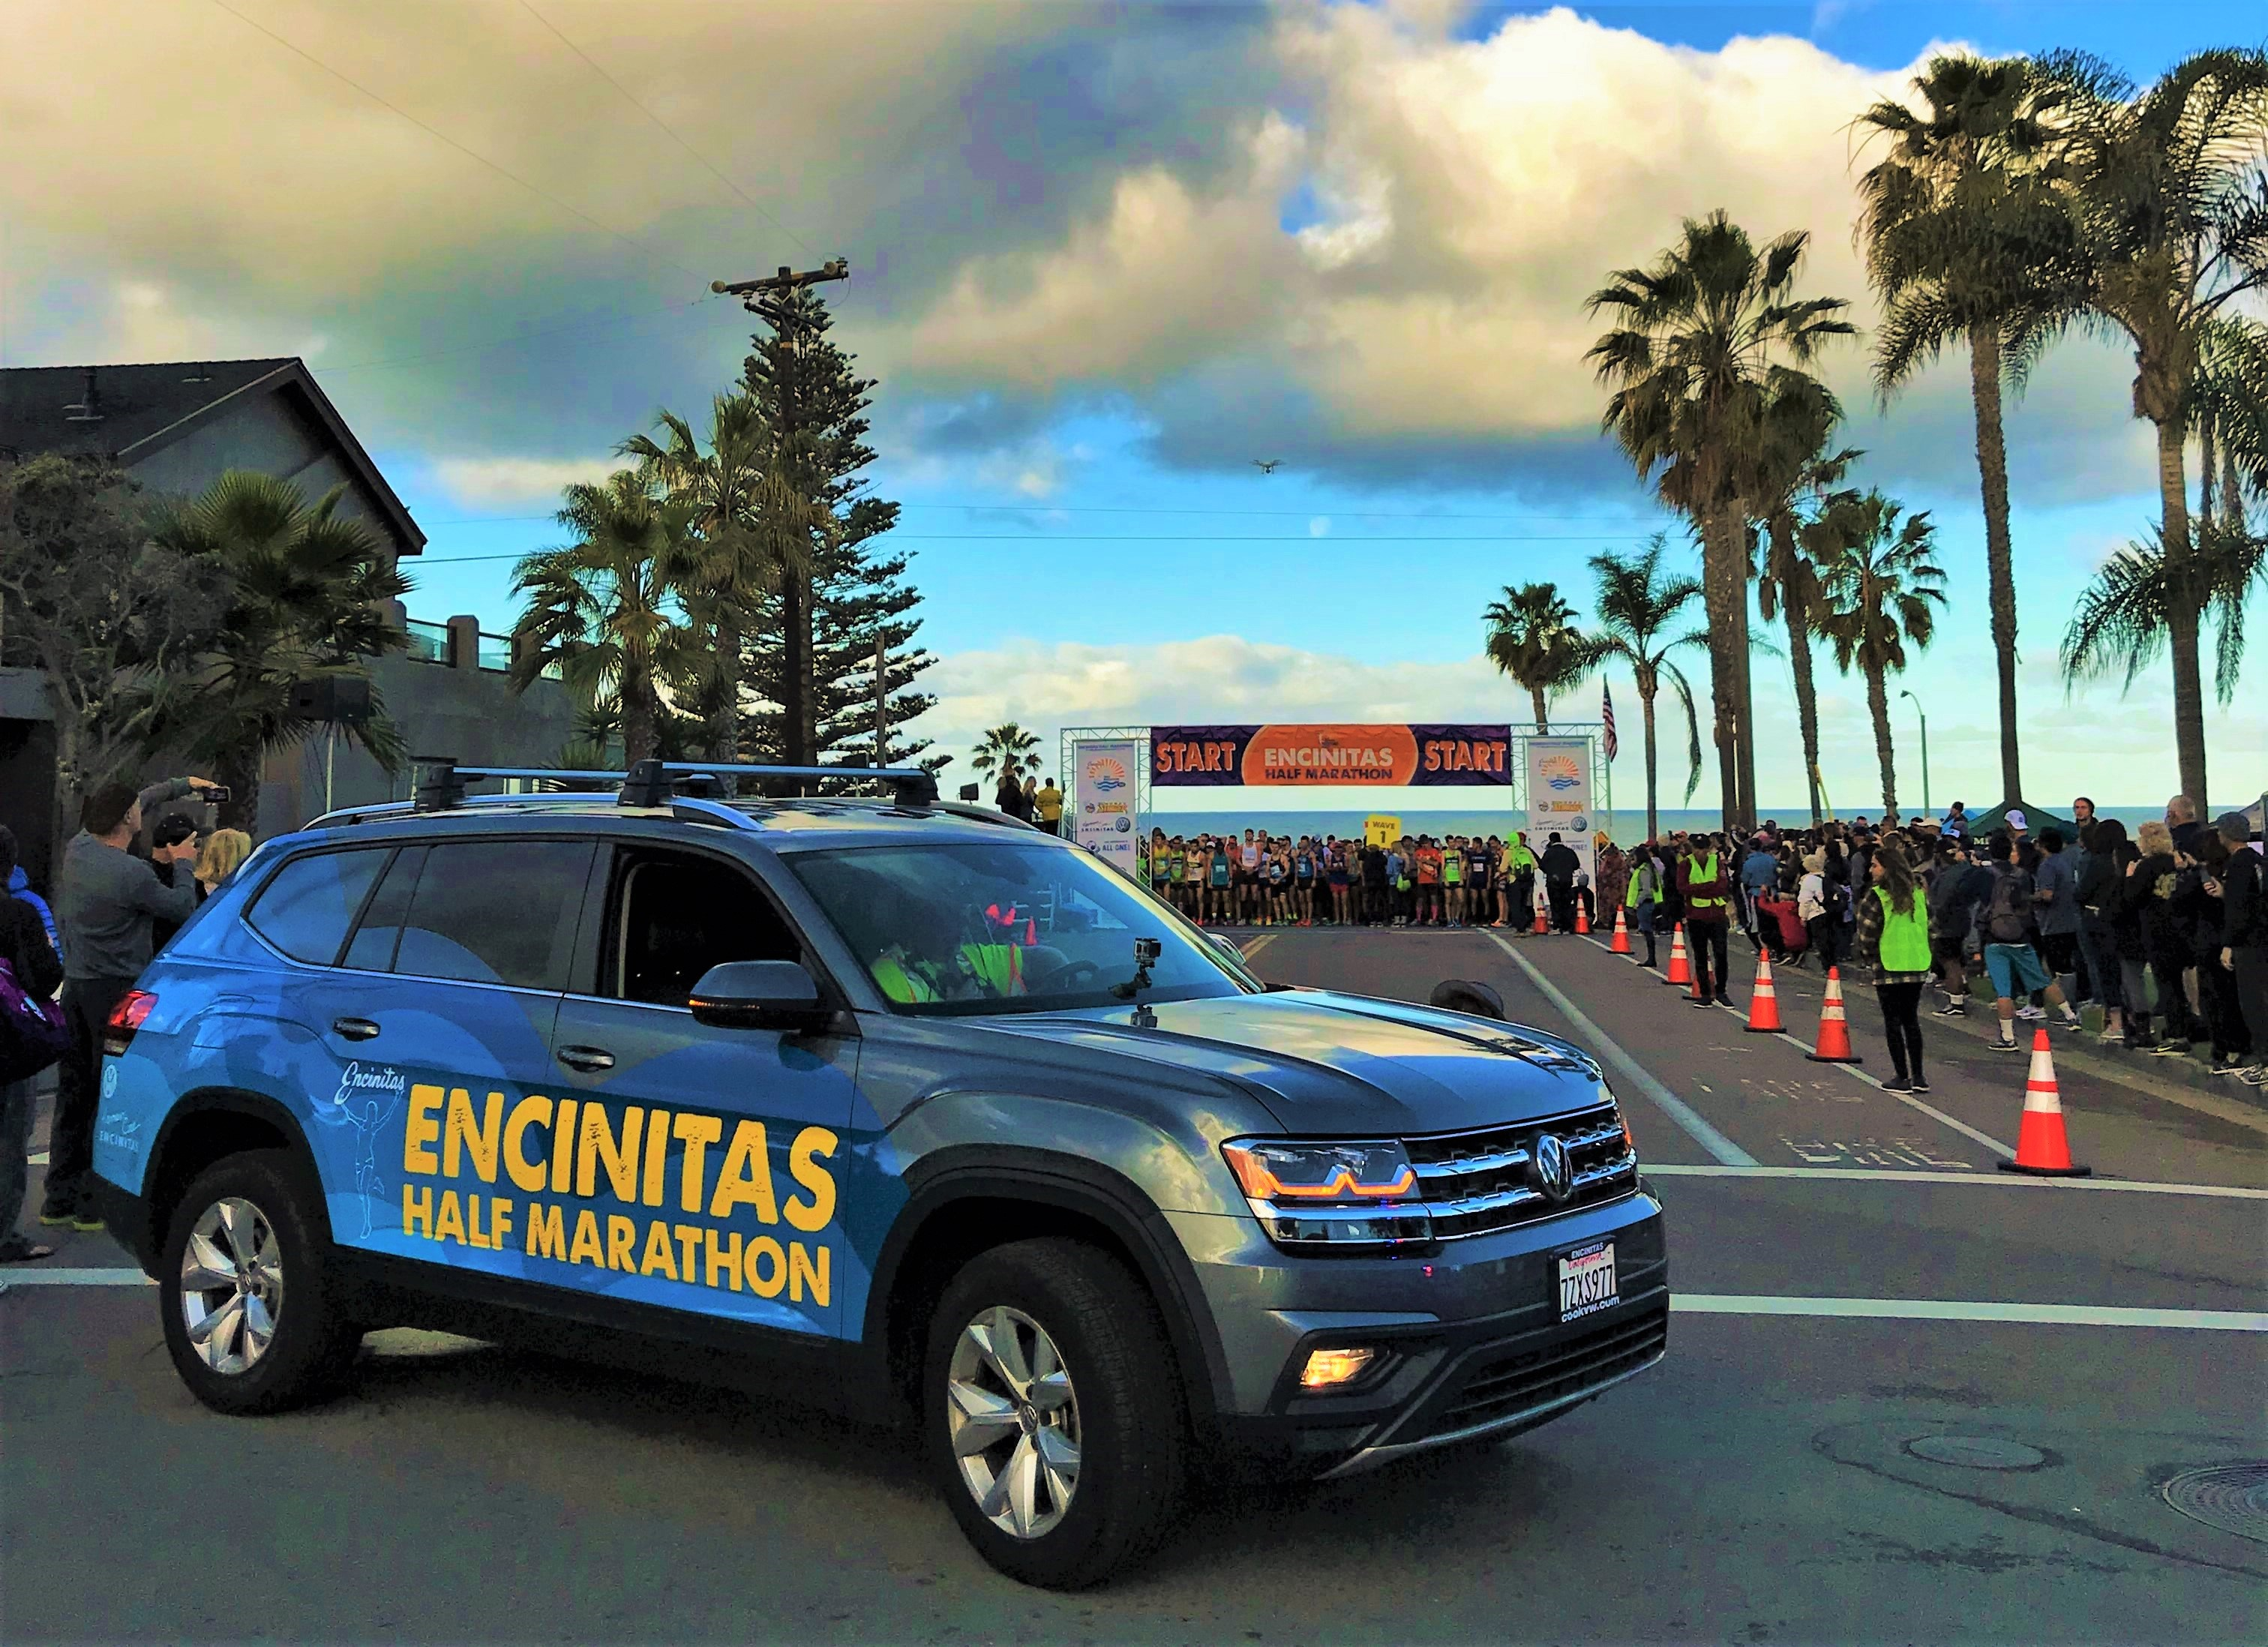 Herman Cook VW - Encinitas Half Marathon 2018 Atlas